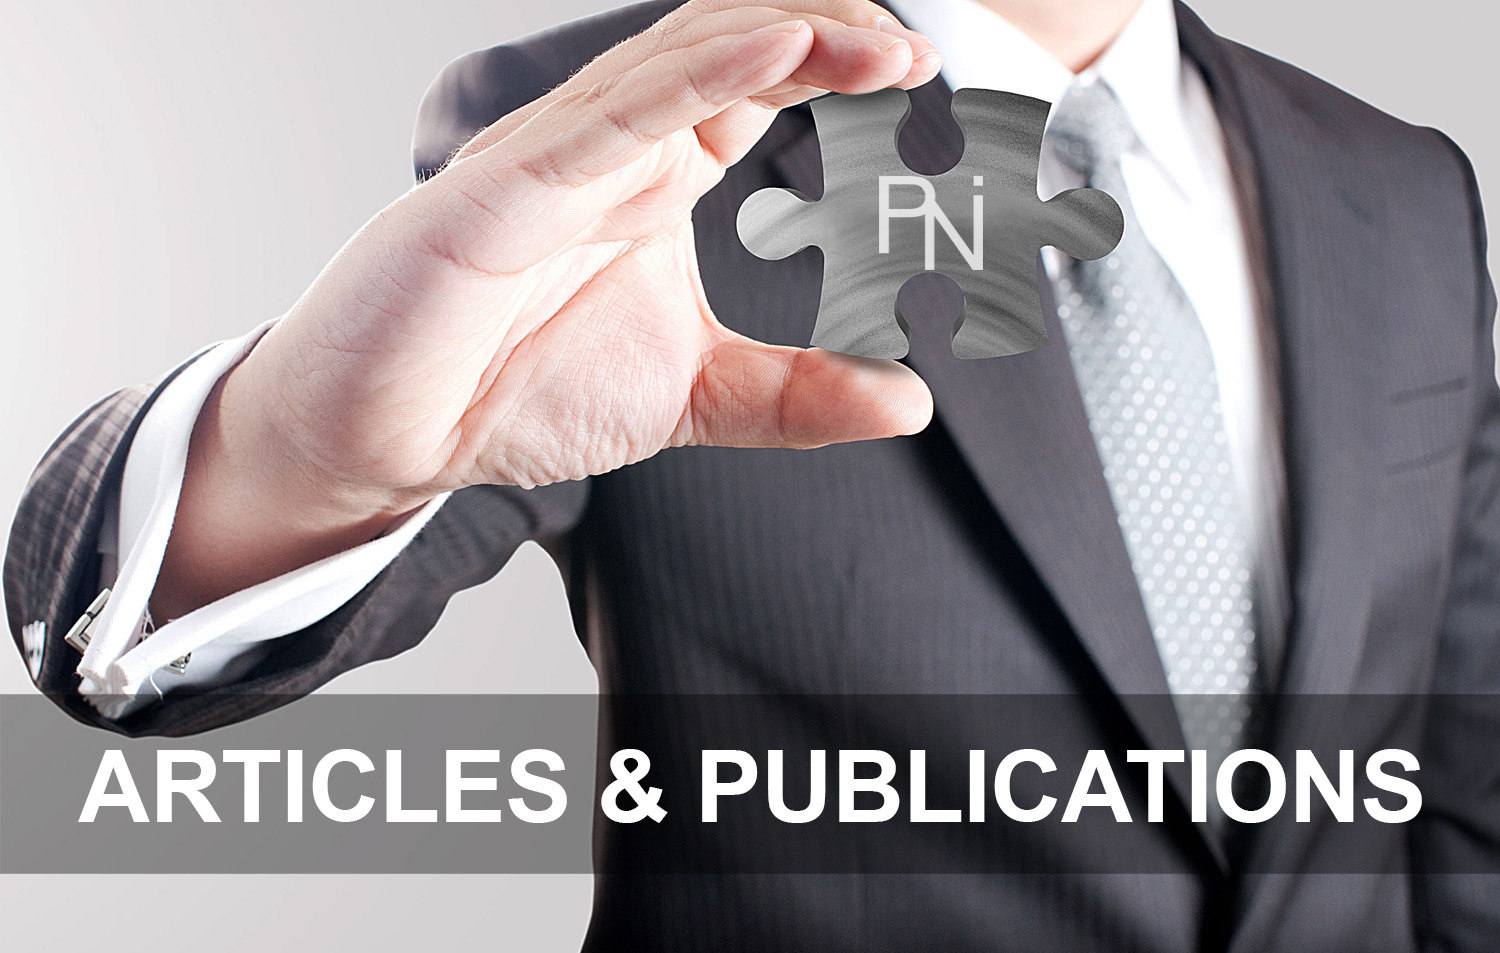 Articles & Publications Icon.jpg